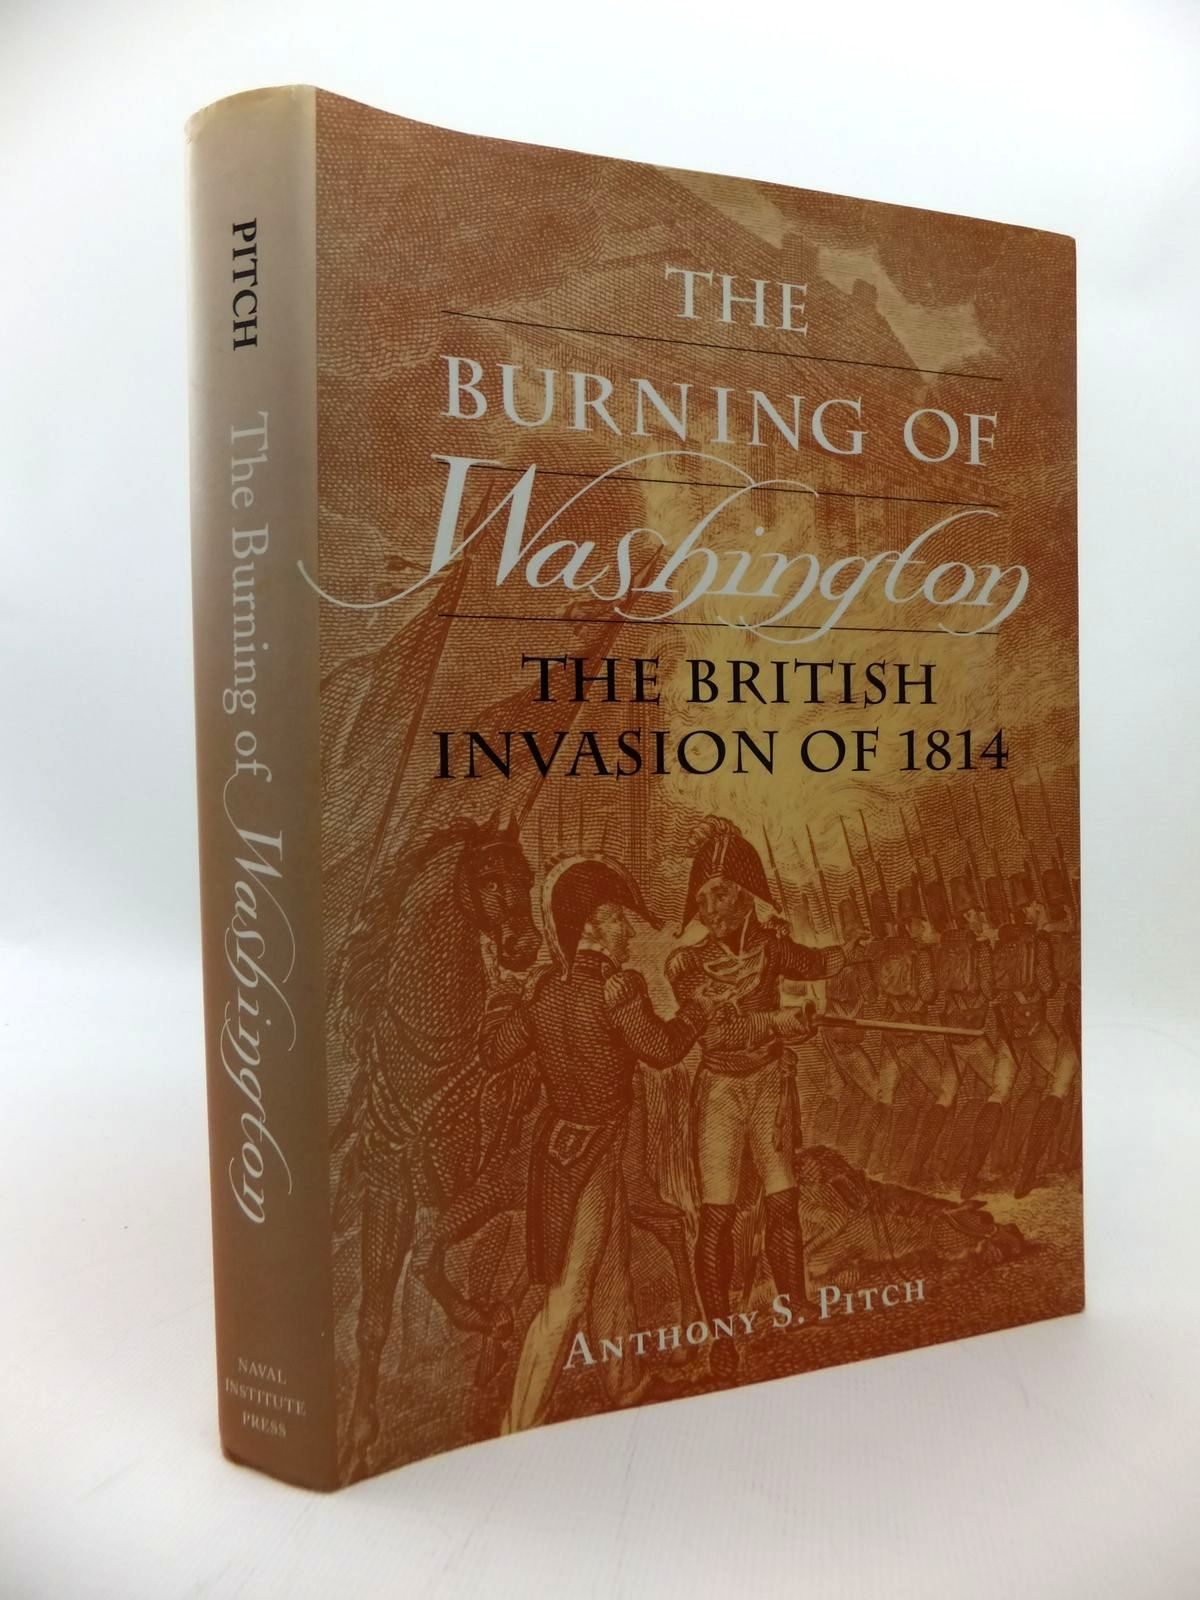 Photo of THE BURNING OF WASHINGTON: THE BRITISH INVASION OF 1814 written by Pitch, Anthony S. published by Naval Institute Press (STOCK CODE: 1814246)  for sale by Stella & Rose's Books